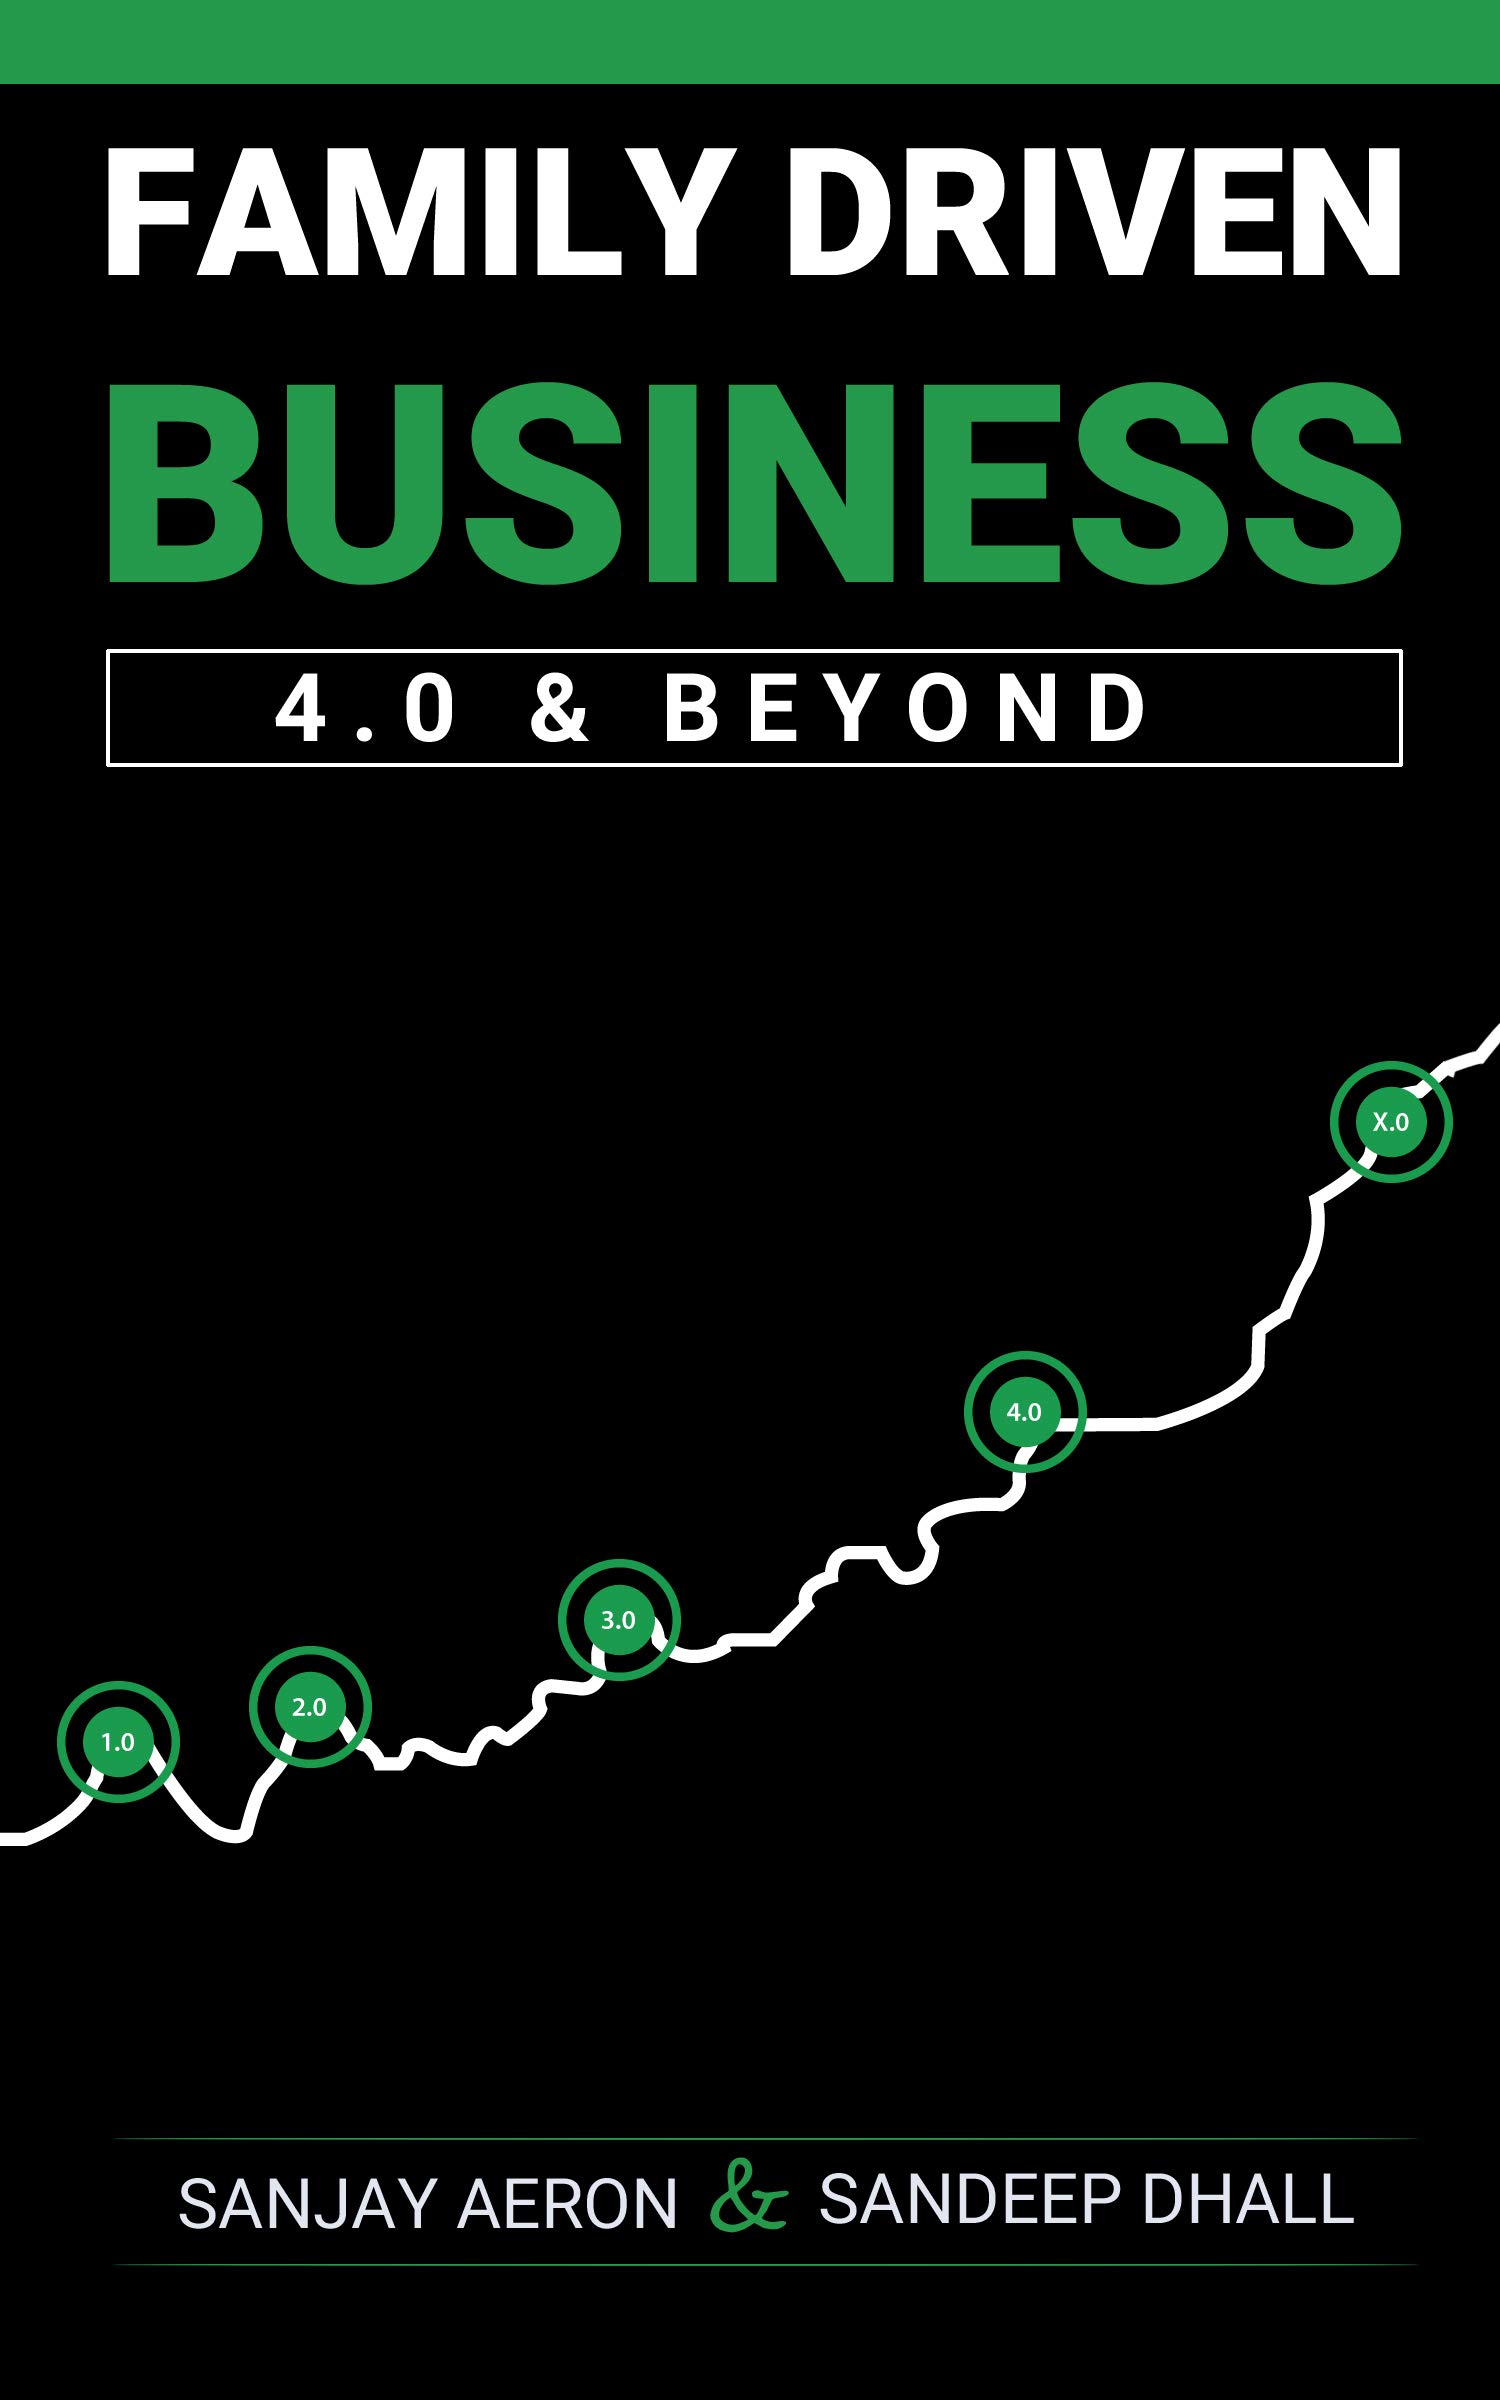 Family Driven Business 4.0 and Beyond